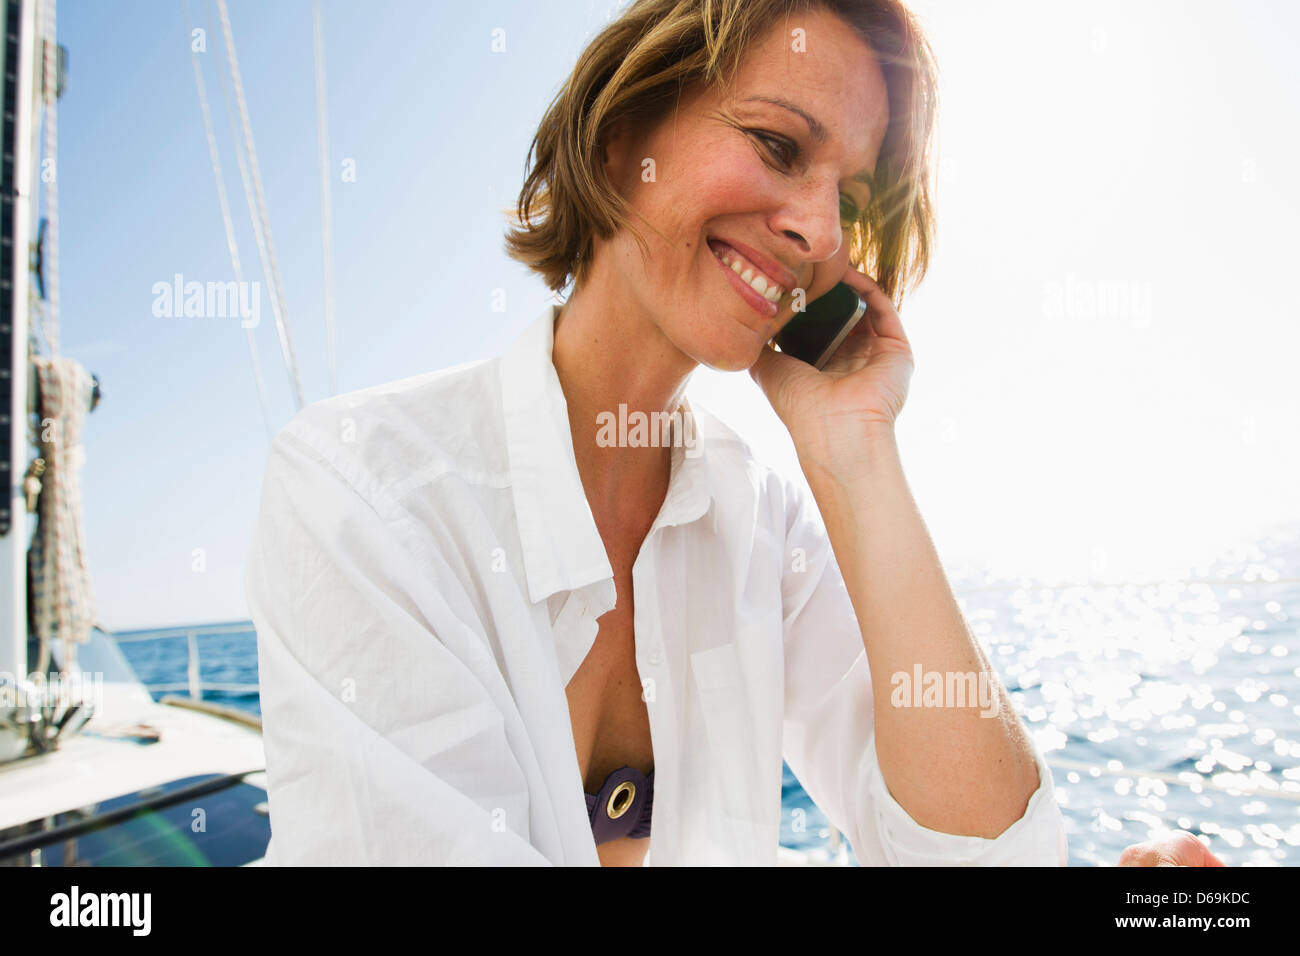 Woman talking on cell phone on boat - Stock Image